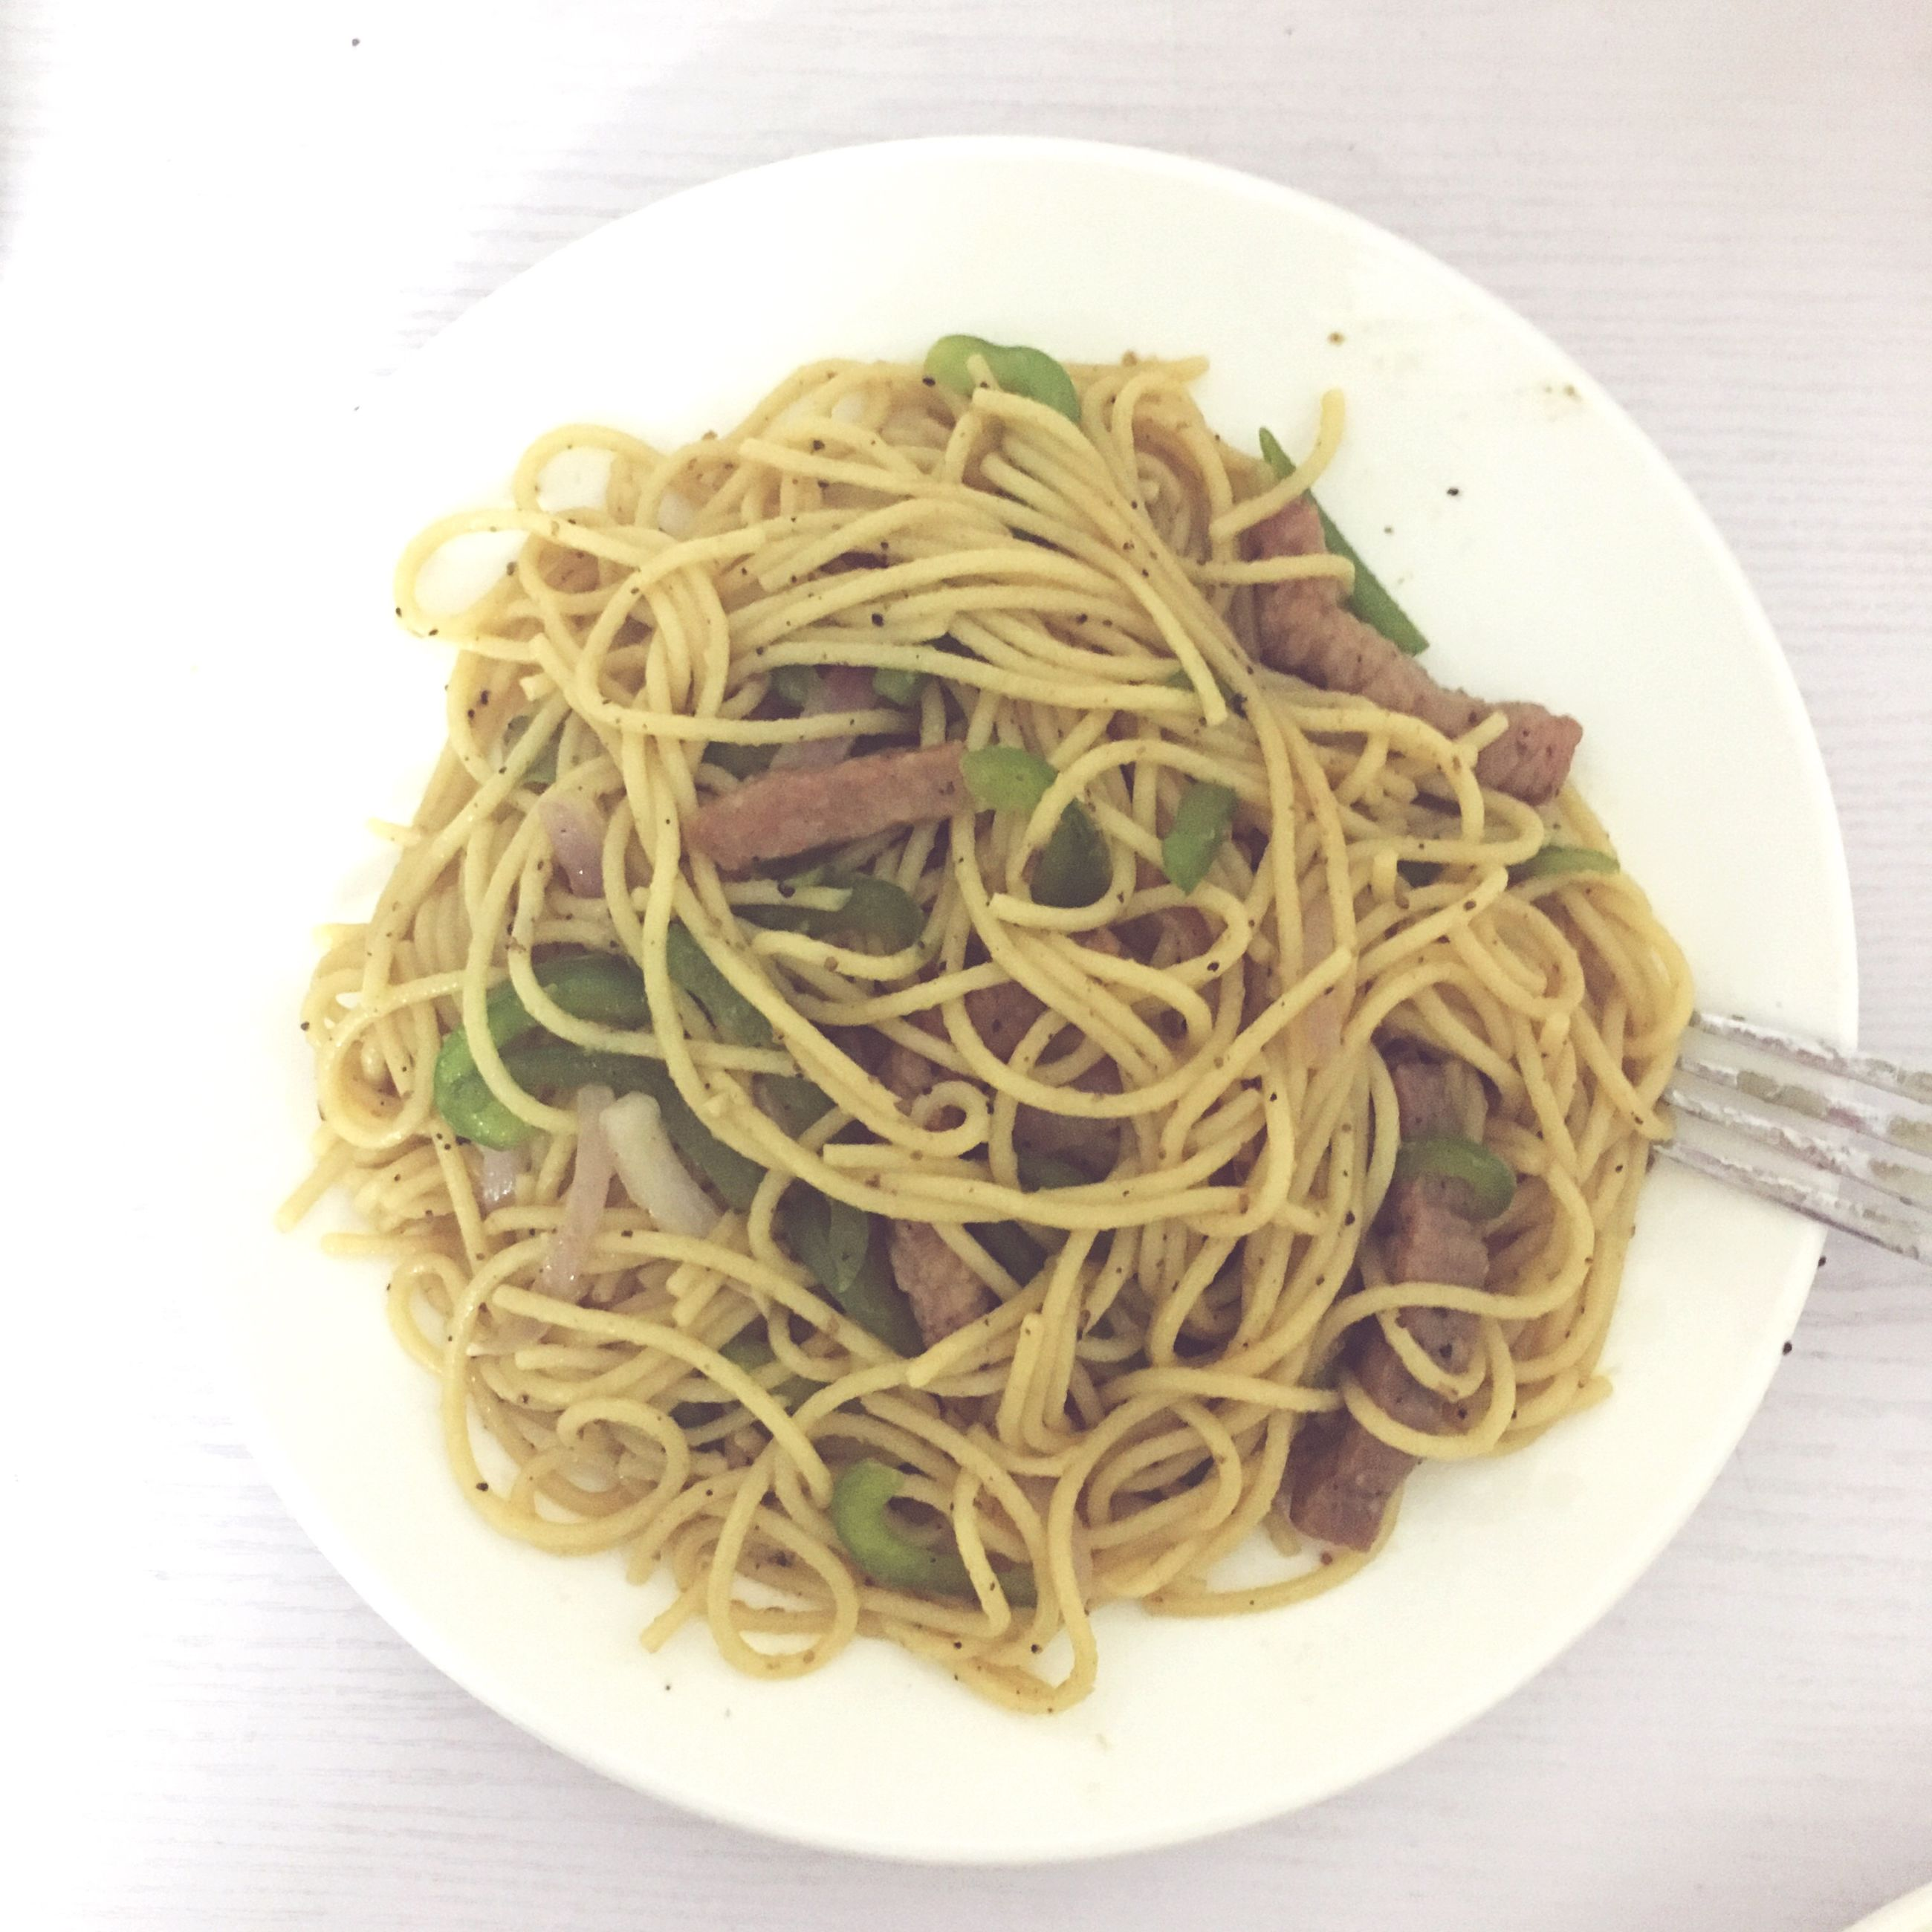 food, food and drink, indoors, freshness, plate, healthy eating, ready-to-eat, still life, noodles, pasta, meal, close-up, high angle view, serving size, table, bowl, directly above, vegetable, spaghetti, cooked